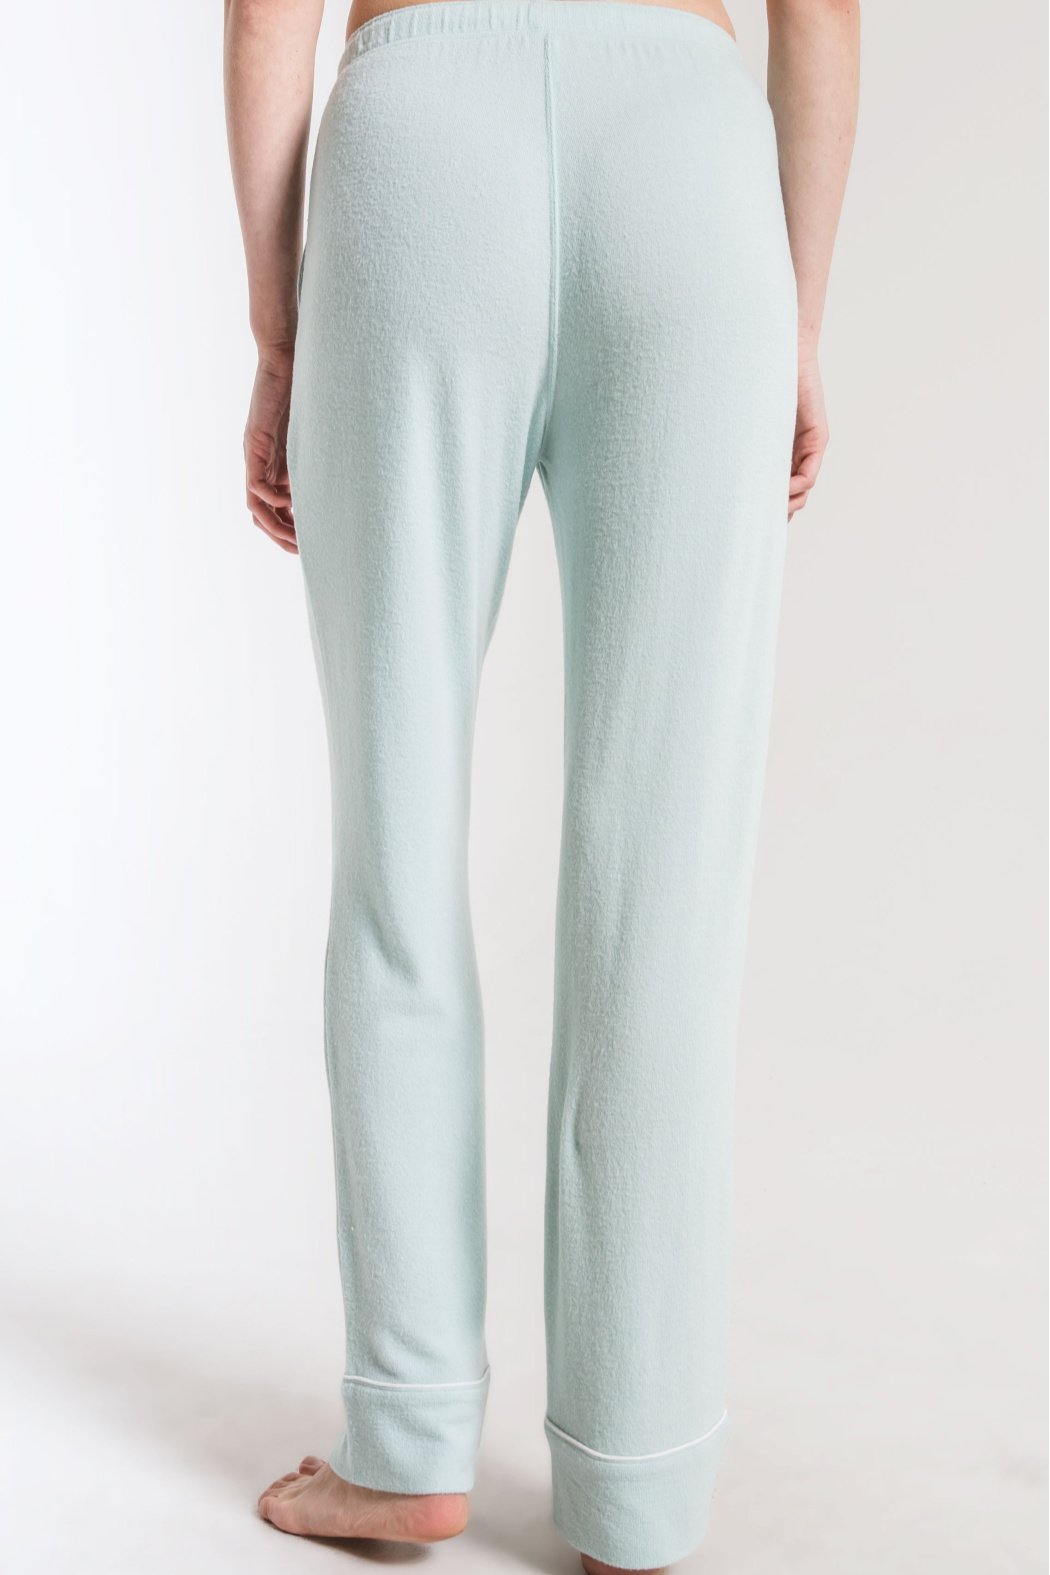 z supply Luxe Menswear PJ Pant - Side Cropped Image